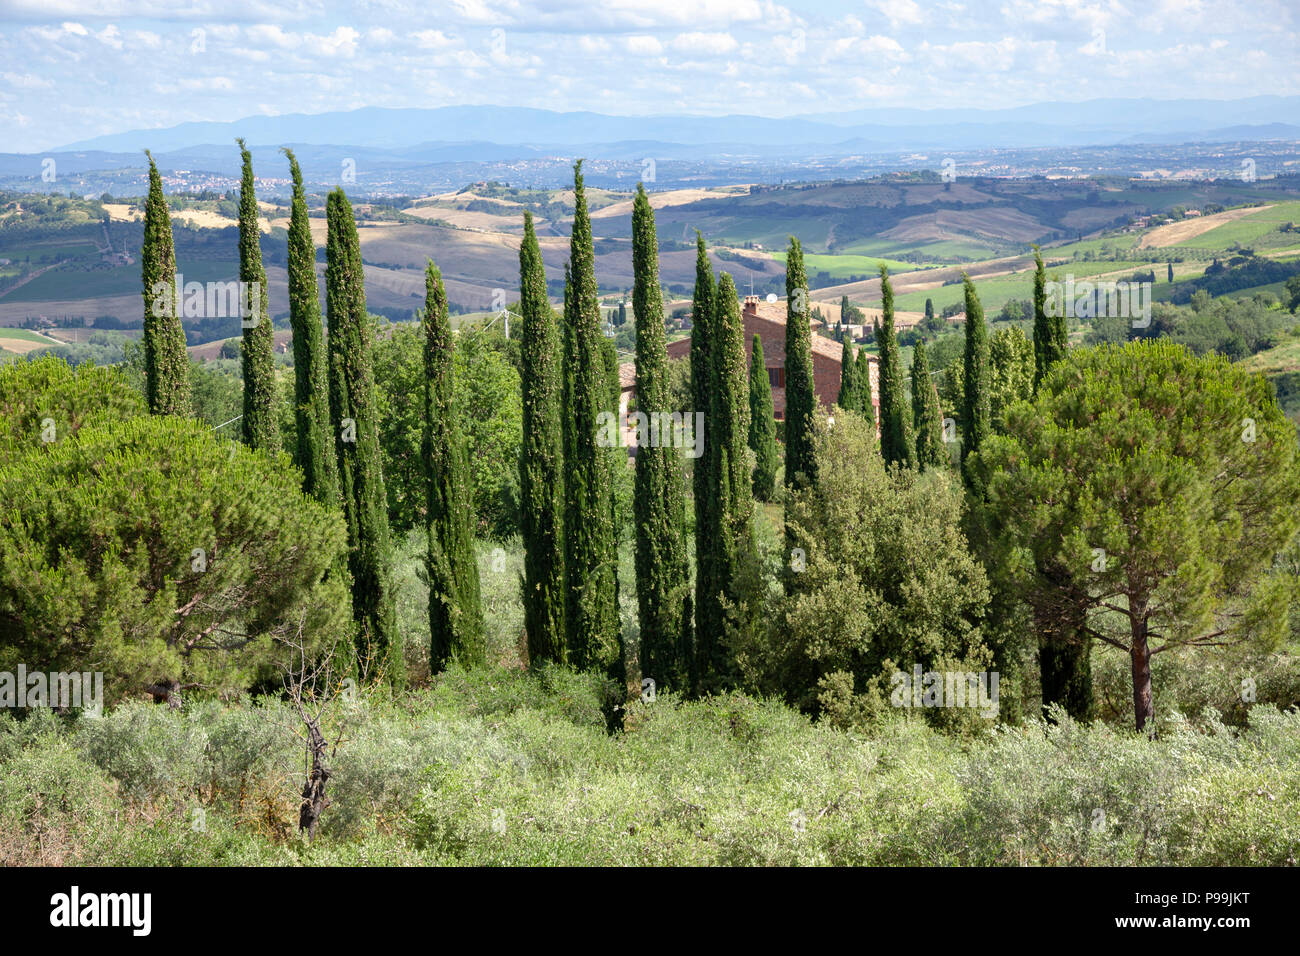 In the vicinity of the church of San Biagio (Tuscany - Italy), a curtain of cypresses protecting a property from the wind. - Stock Image